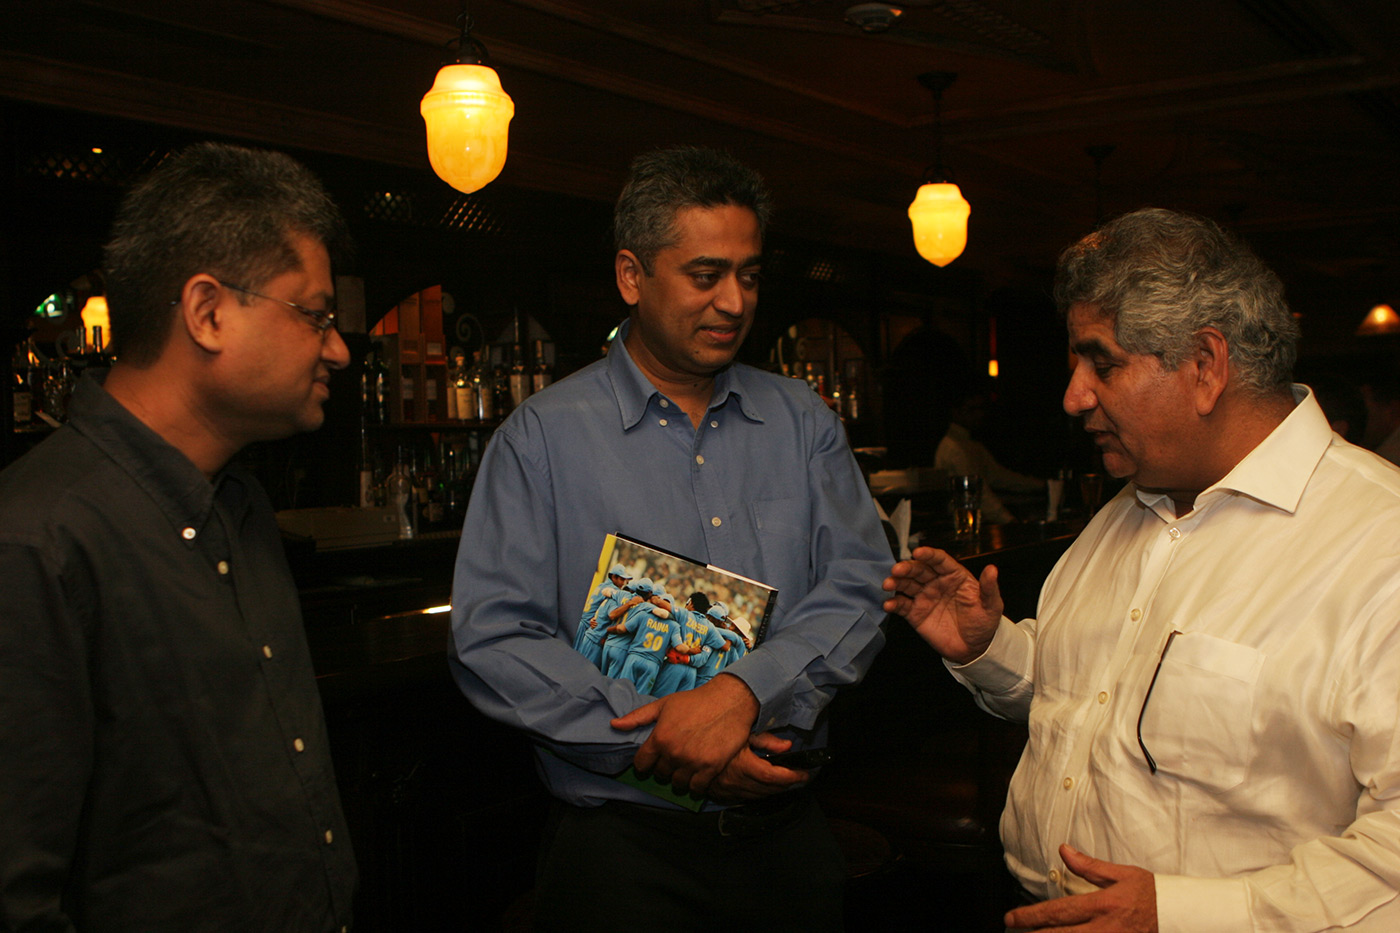 Rajdeep Sardesai (centre) at a book launch event in Mumbai